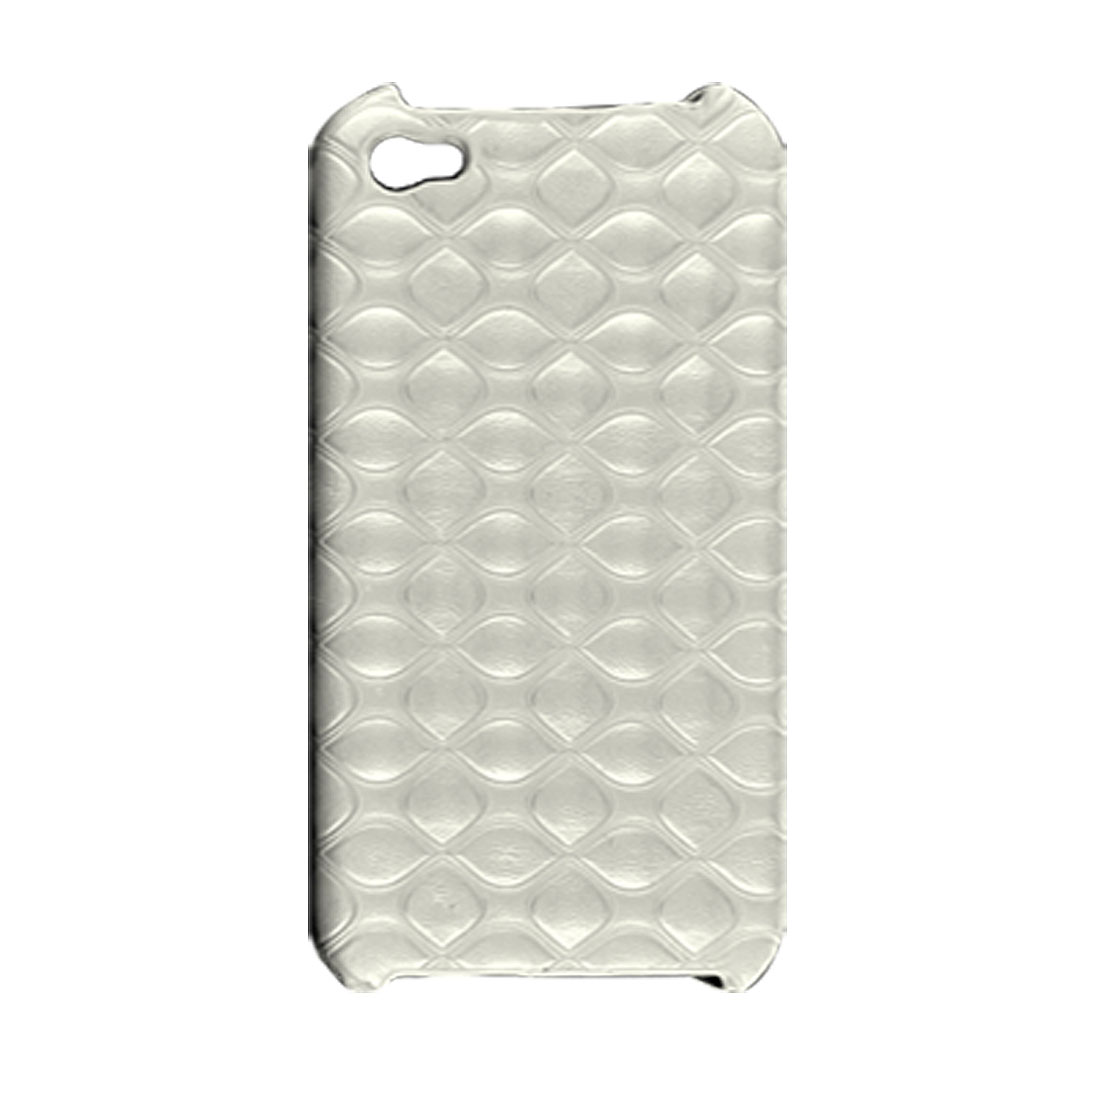 White Faux Leather Coated Plastic Back Case for iPhone 4 4G